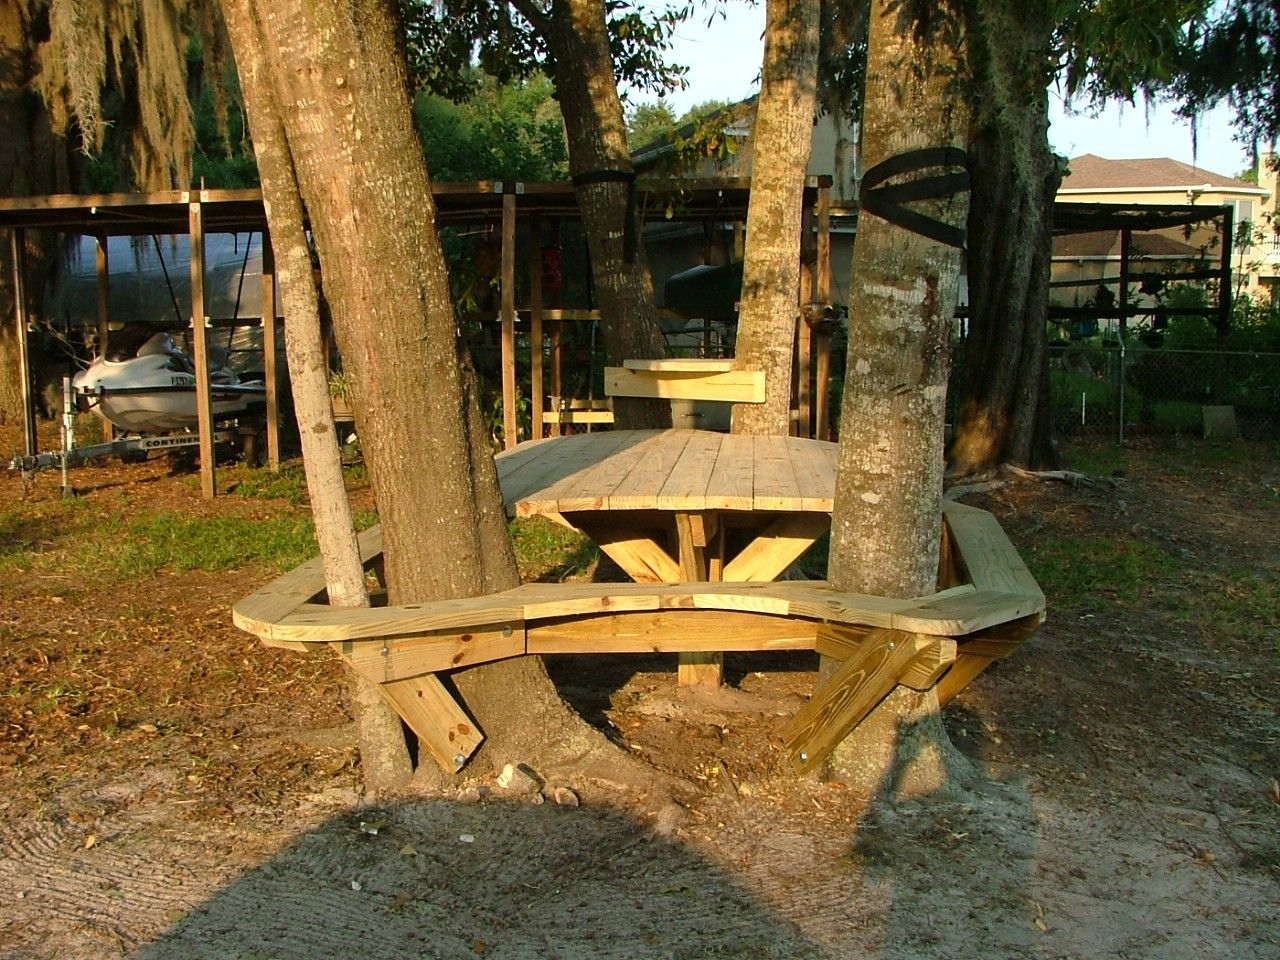 Maybe A Custom Bench Version Of This Around The Pine Trees Or Maybe I Can Just Modify My Picnic